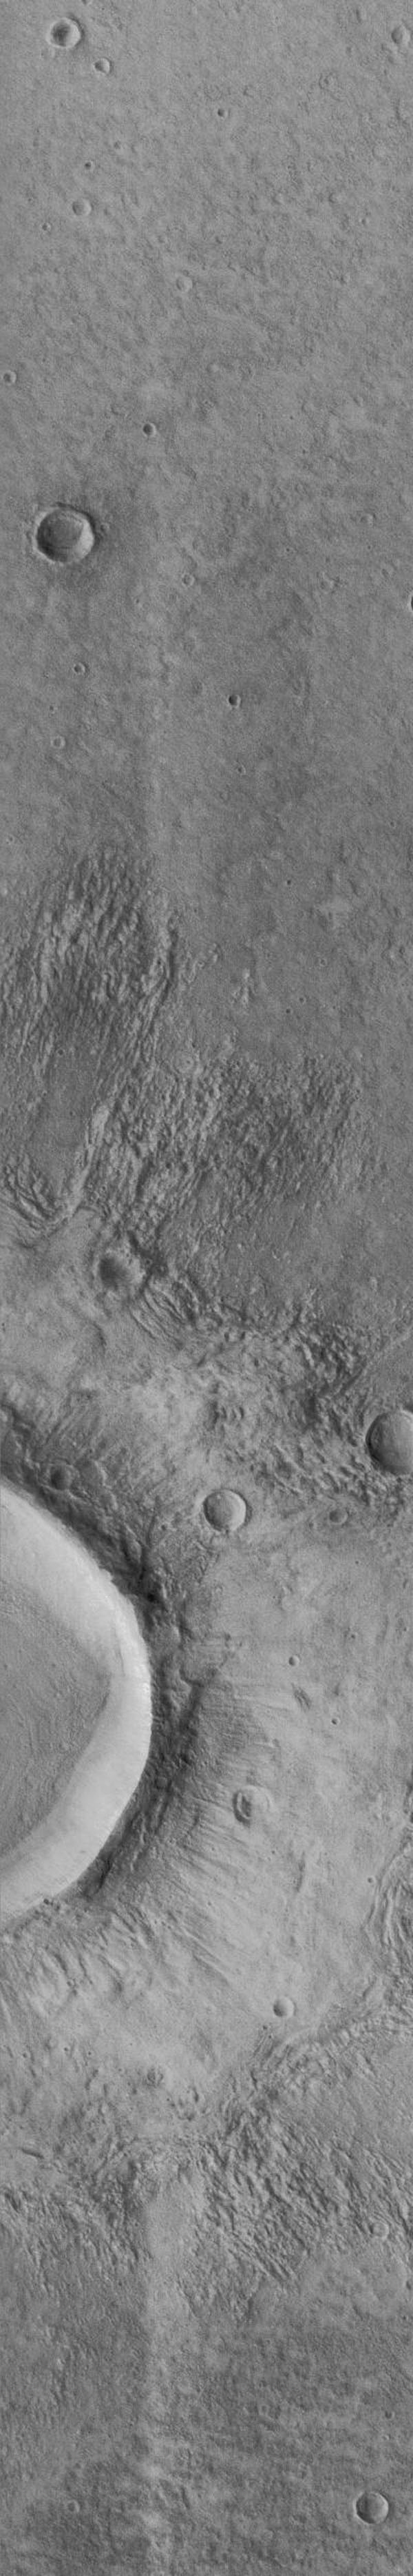 NASA's Mars Global Surveyor acquired this image of a flow ejecta crater on November 19, 1997. Flow ejecta craters are so named because the material blasted out of the crater during the impact process appears to have flowed across the surface of Mars.